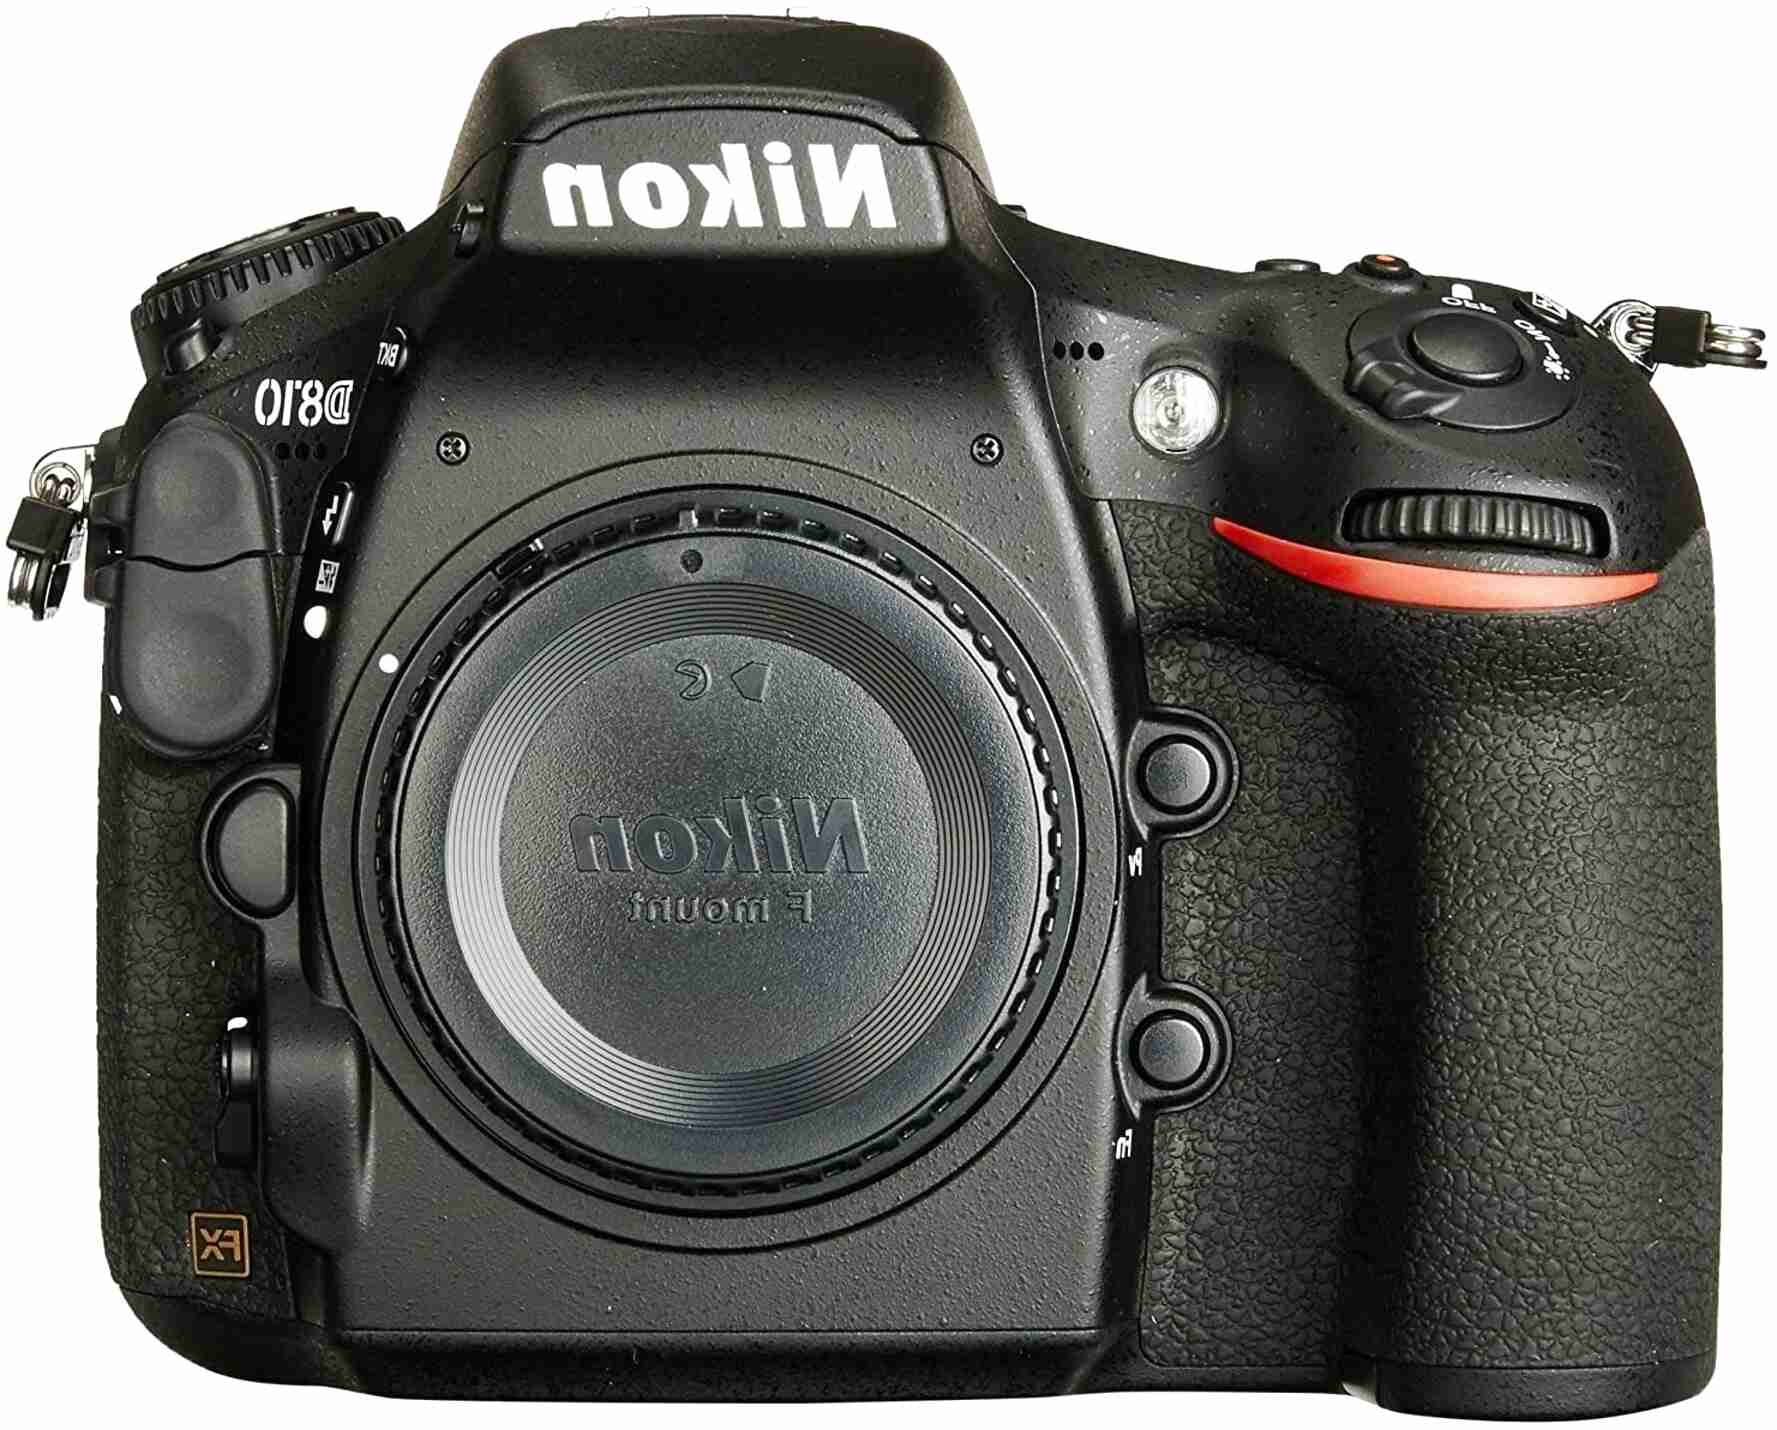 d810 for sale